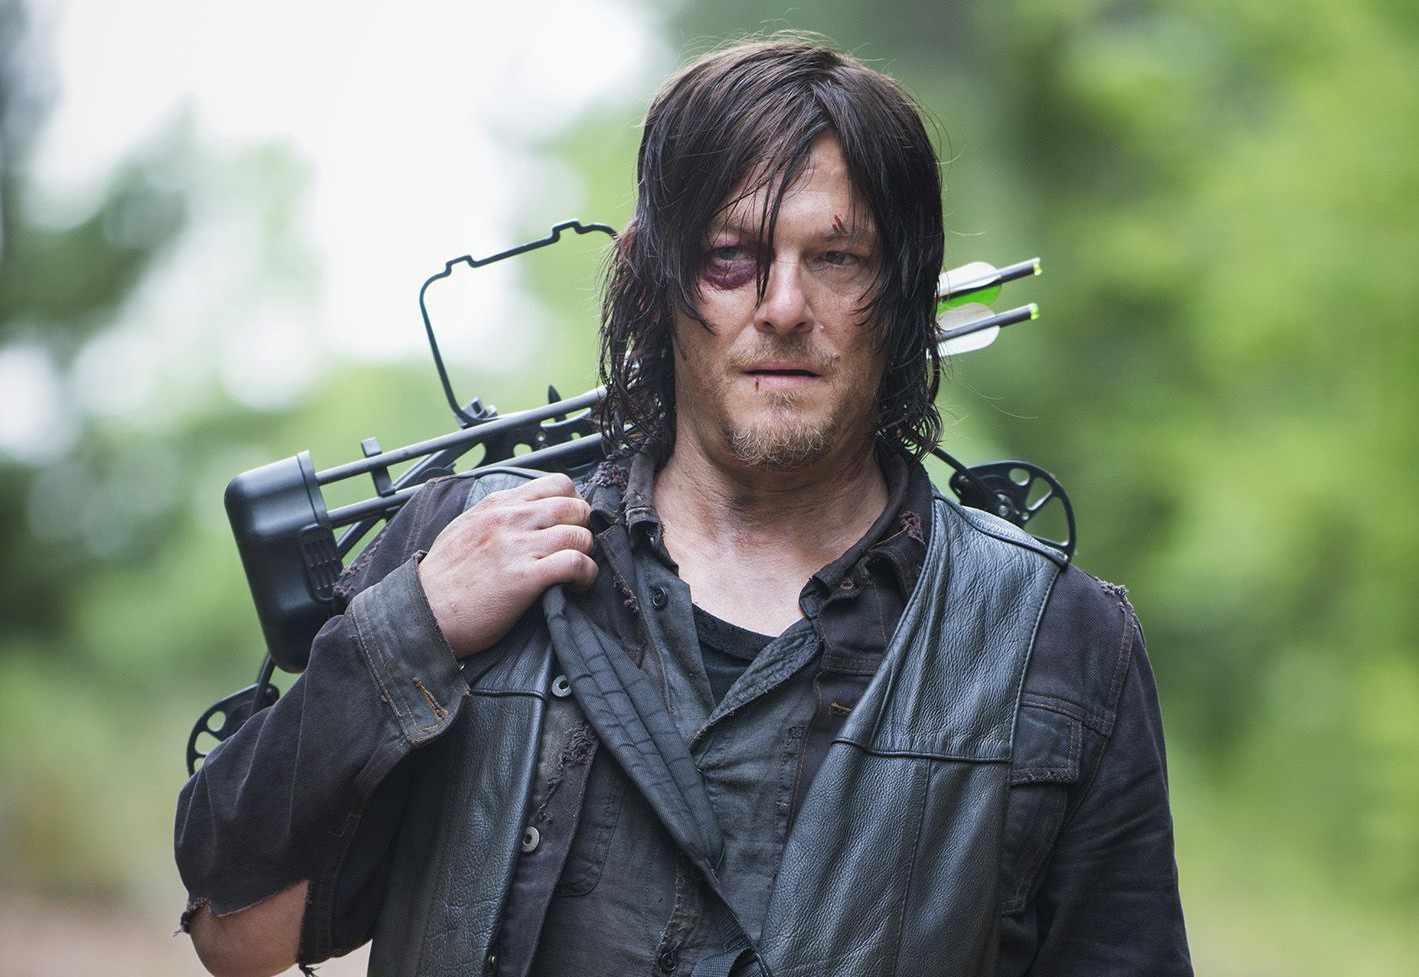 You could win a date with The Walking Dead's Norman Reedus